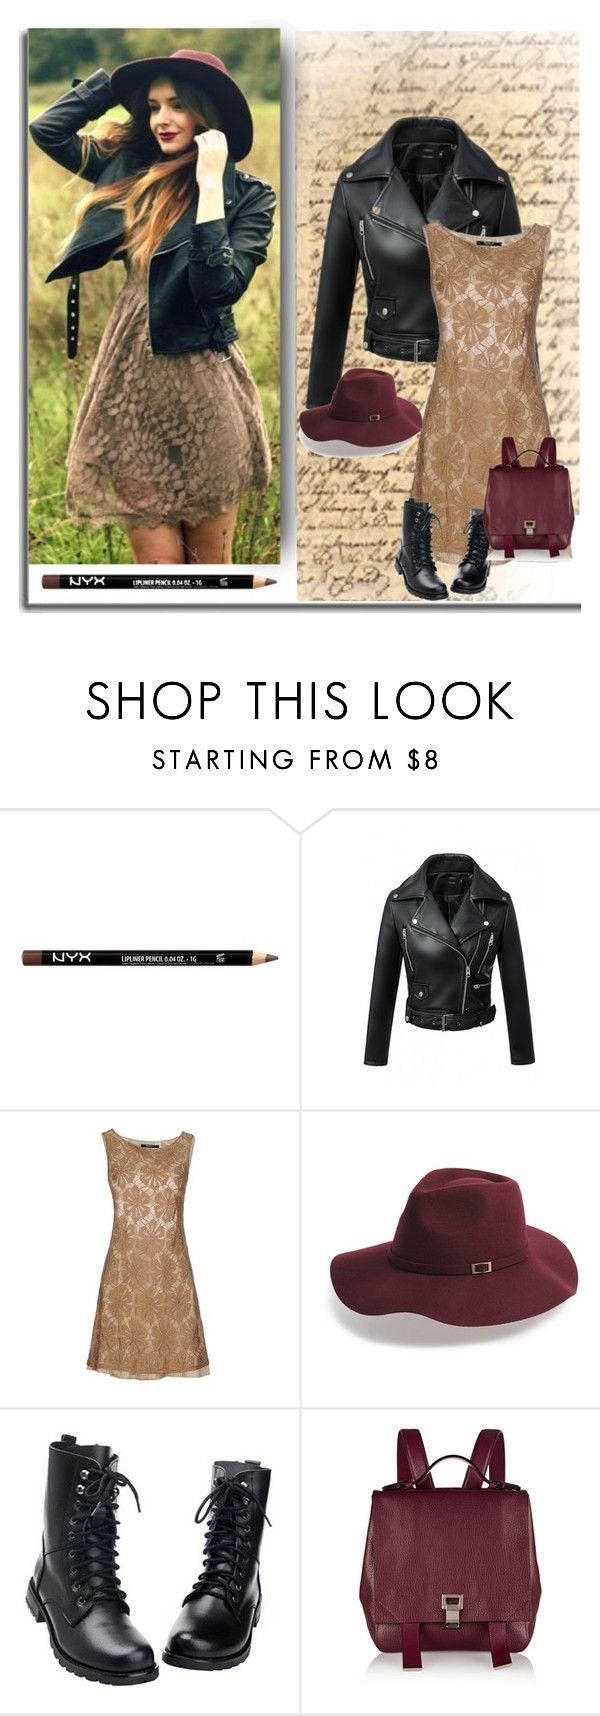 """""""Spring Will Spring Will Rock You!"""" by signa2000 ❤ liked on Polyvore featuring NYX, WithChic, Siste's, Shiraleah and Proenza Schouler"""